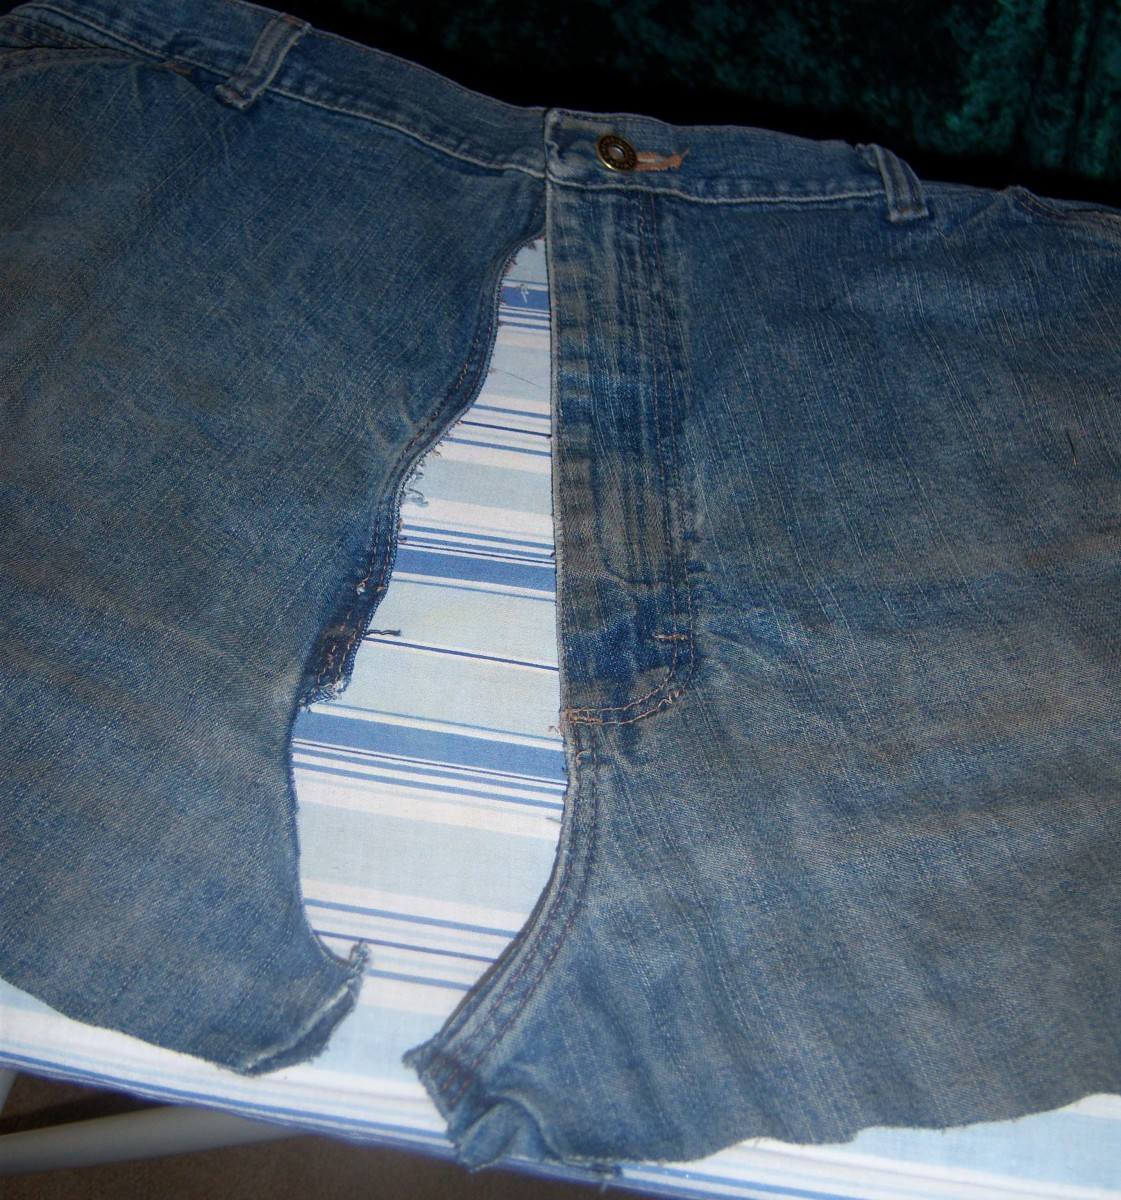 The same view, but with the crotch separated and zipper removed.